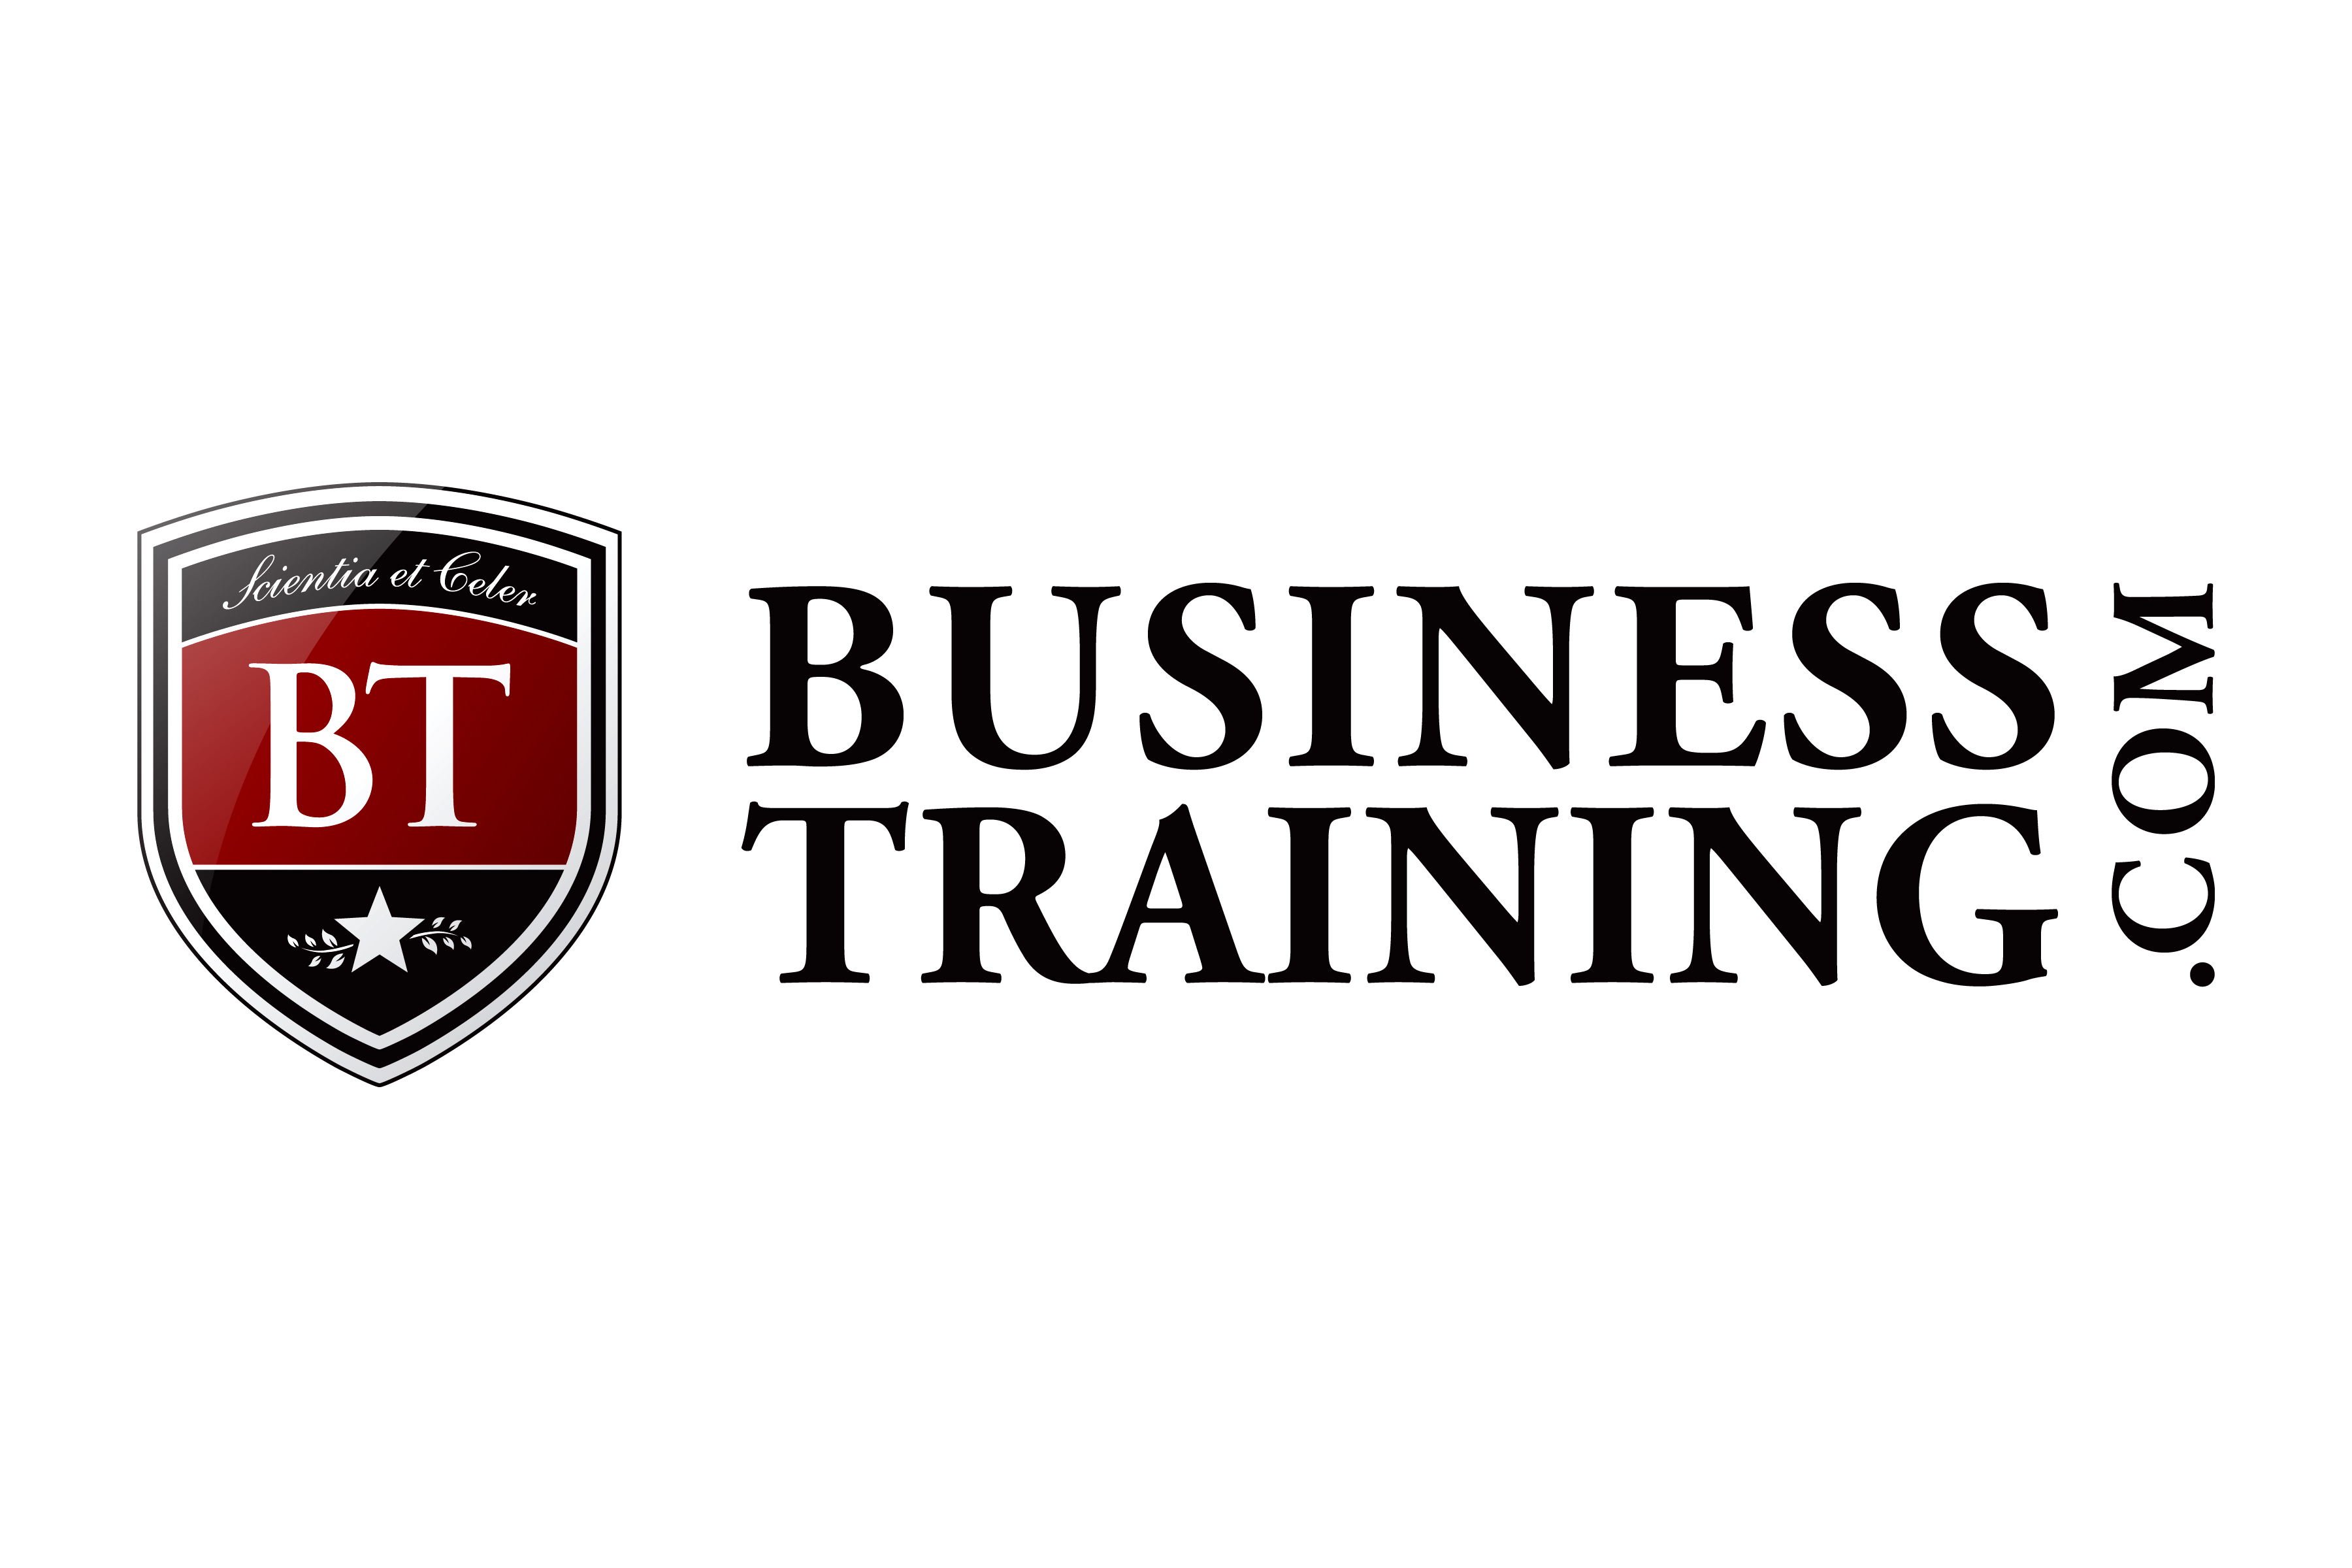 businesstraining_logo